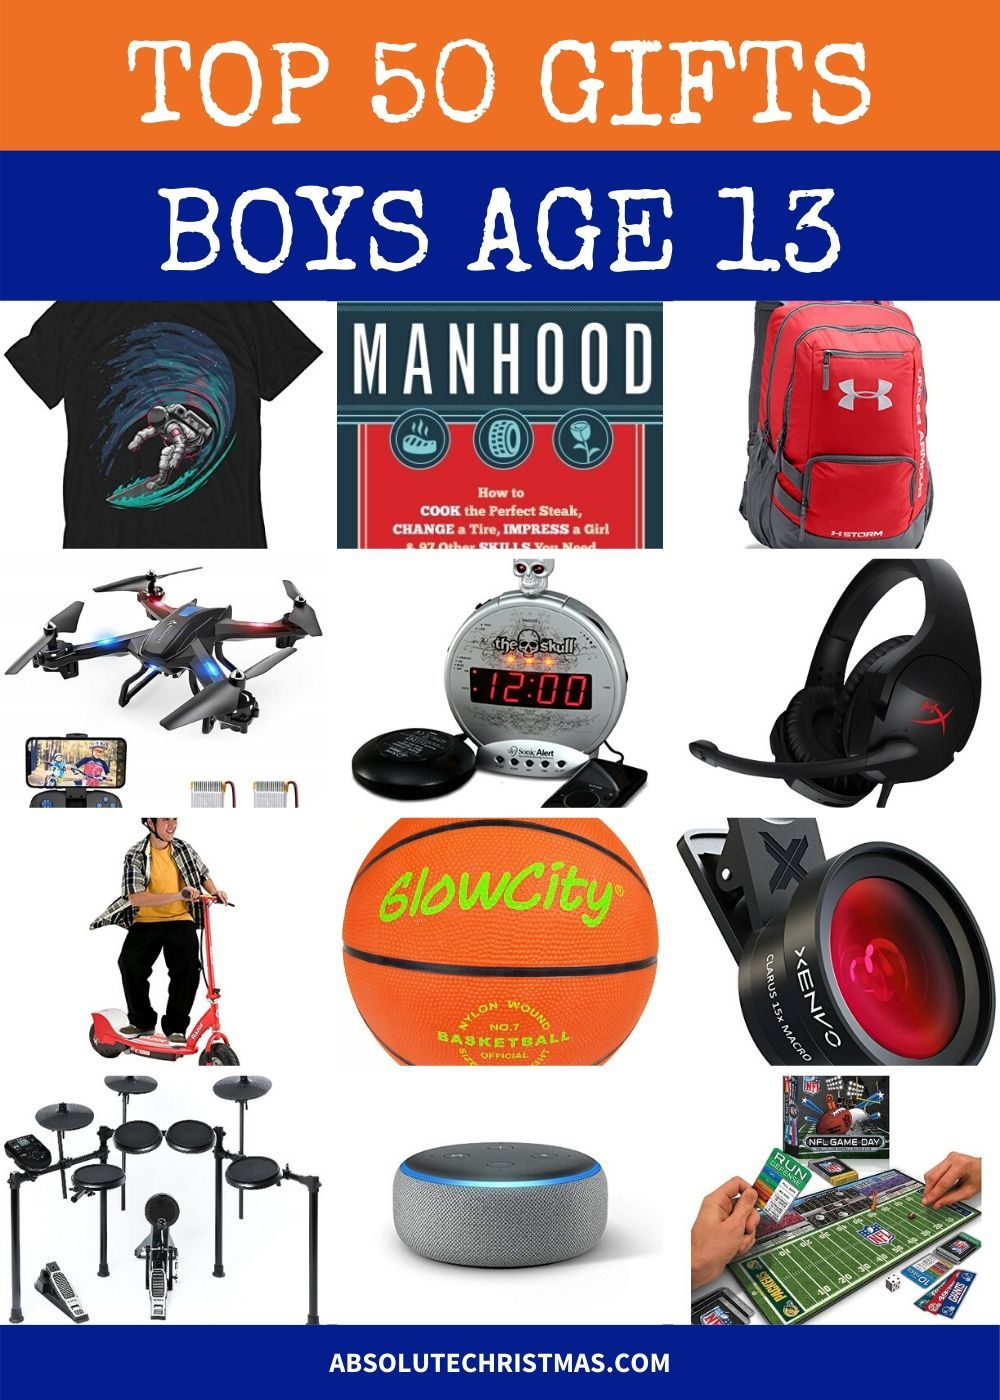 2020 Christmas Gift Ideas For 13 Year Old Boy Best Gifts For 13 Year Old Boys 2020 | Christmas gifts for boys